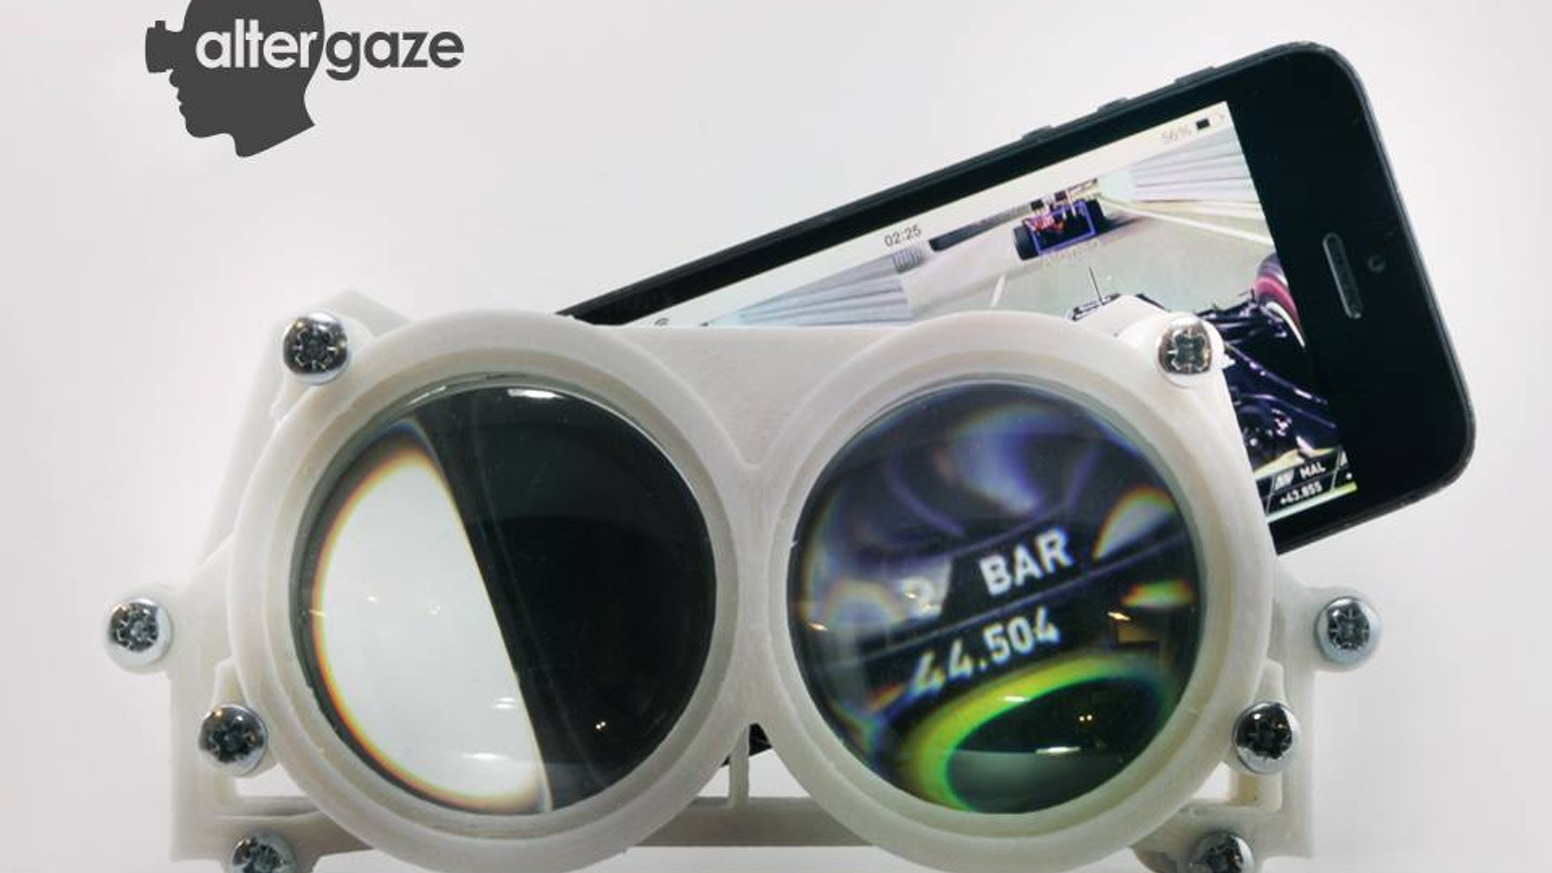 100 Images of Altergaze